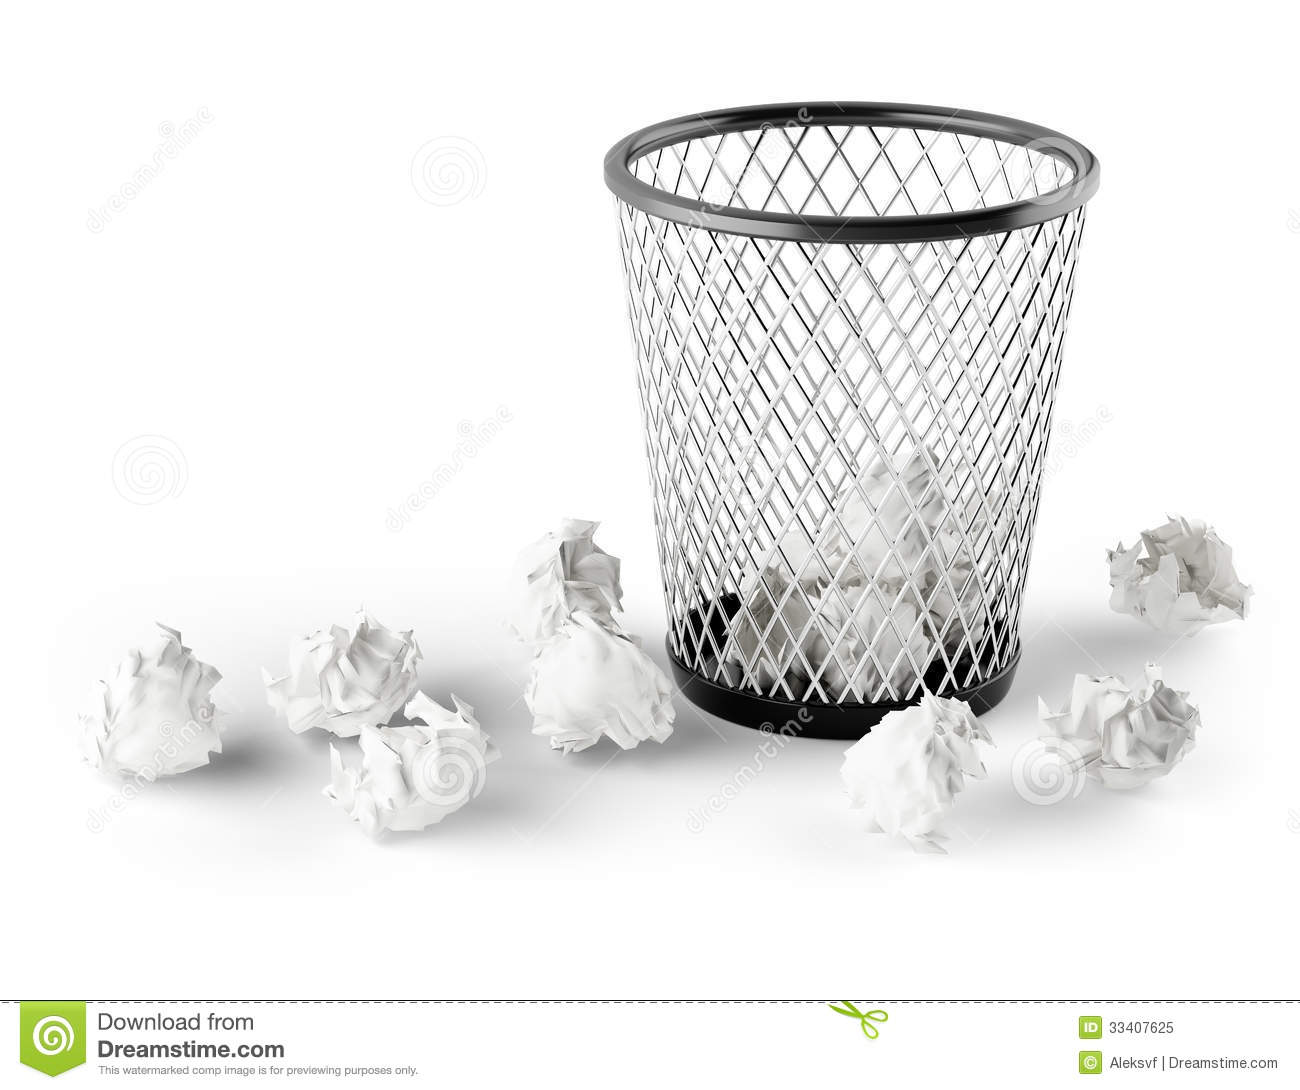 Waste Paper Basket Wastepaper Basket Royalty Free Stock Photo  Image 33407625